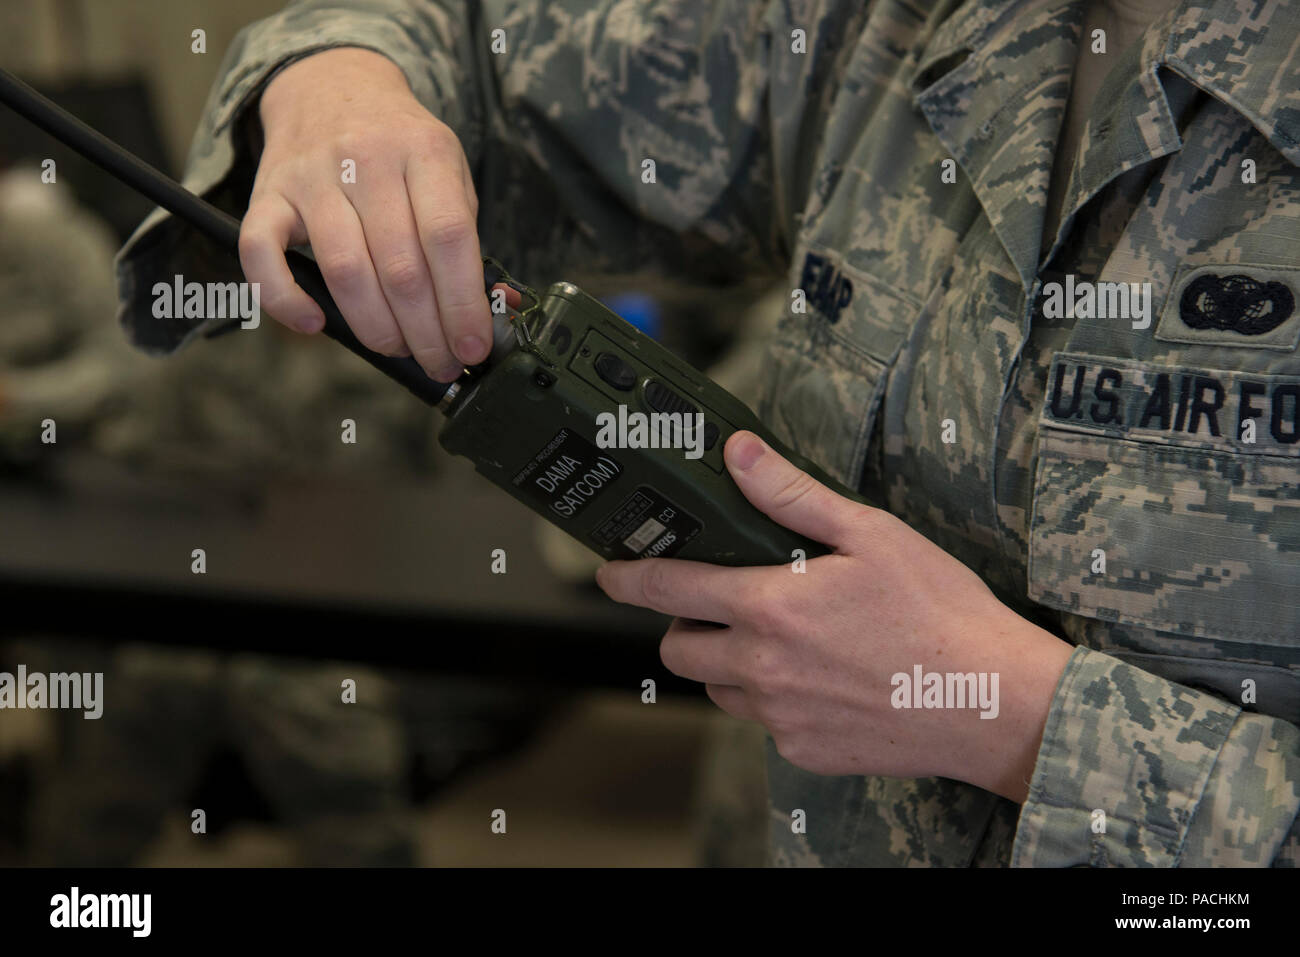 Handheld Radio Stock Photos & Handheld Radio Stock Images - Alamy